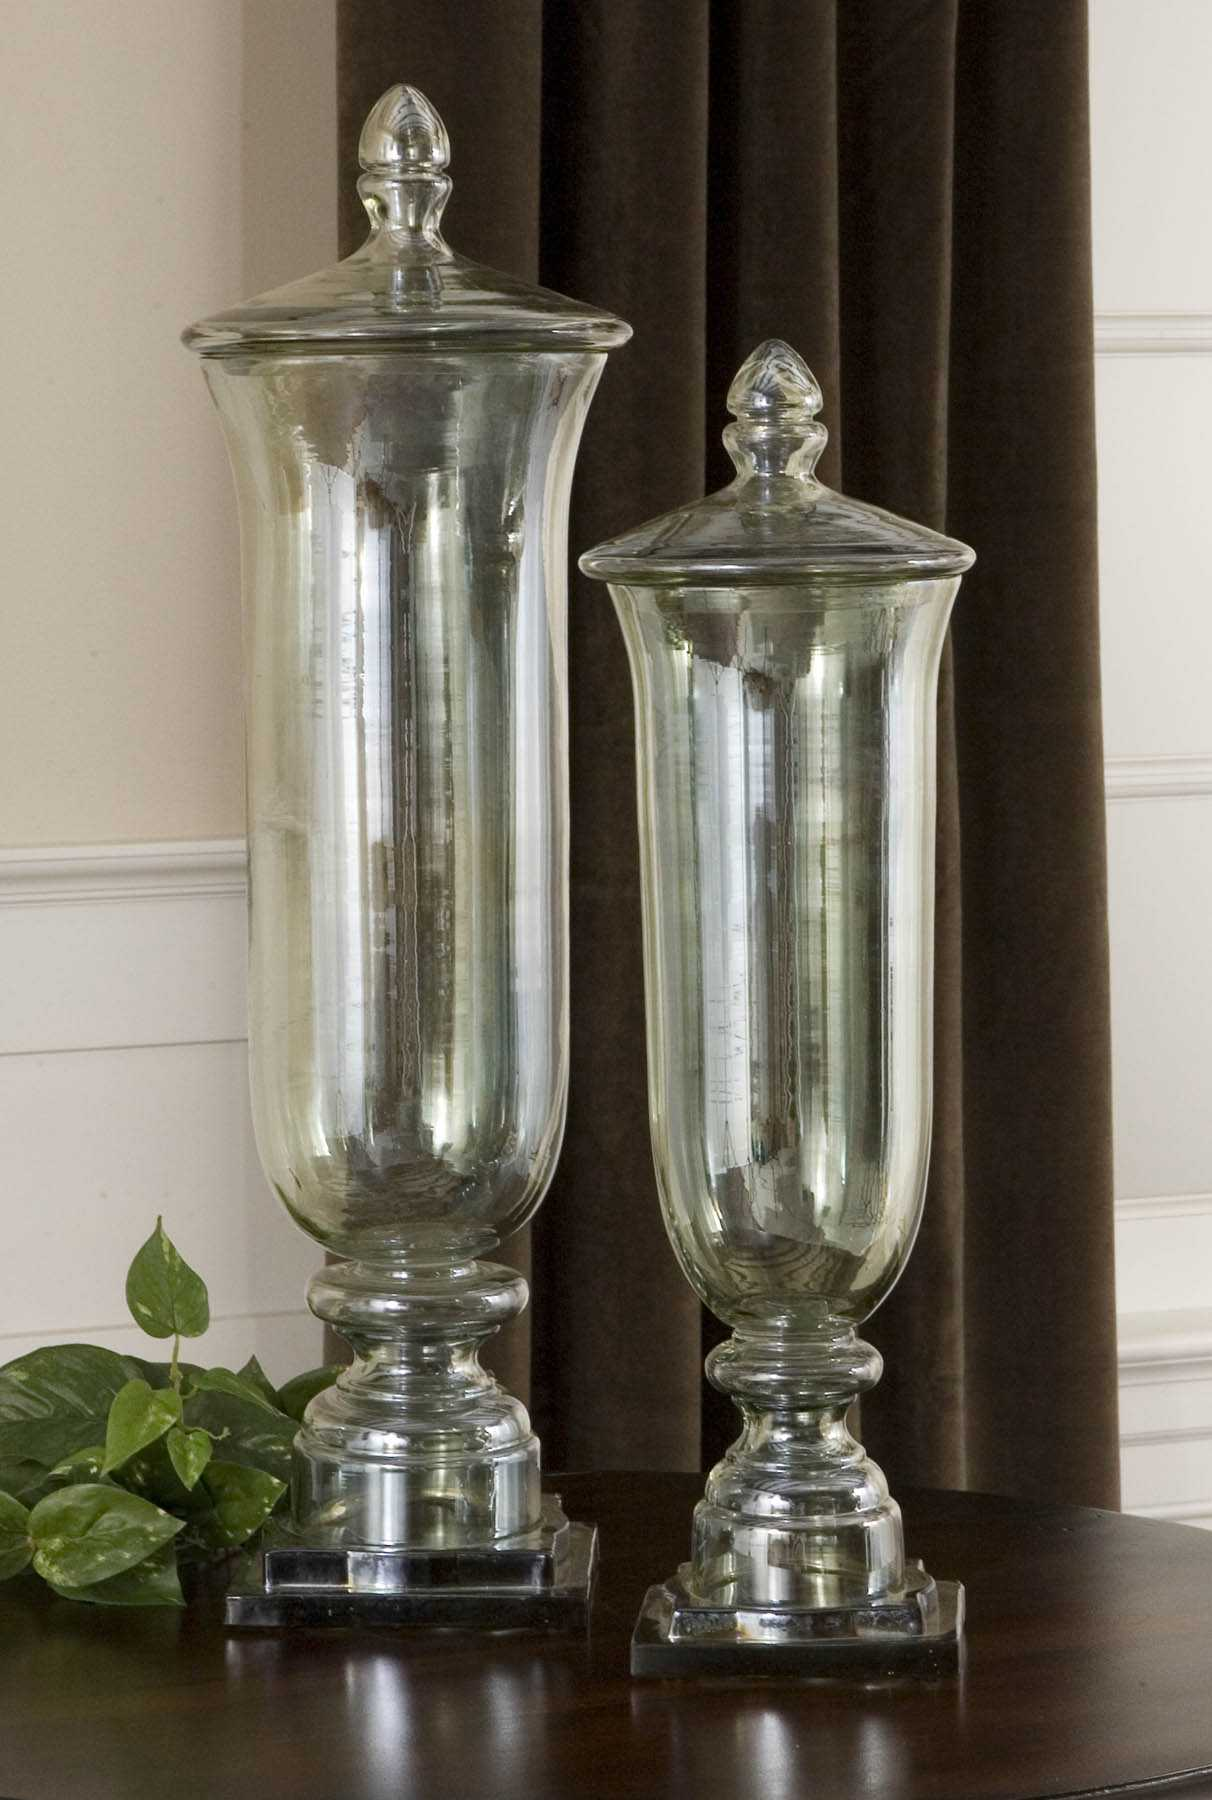 Uttermost Gilli Glass Decorative Containers 2 Piece Set